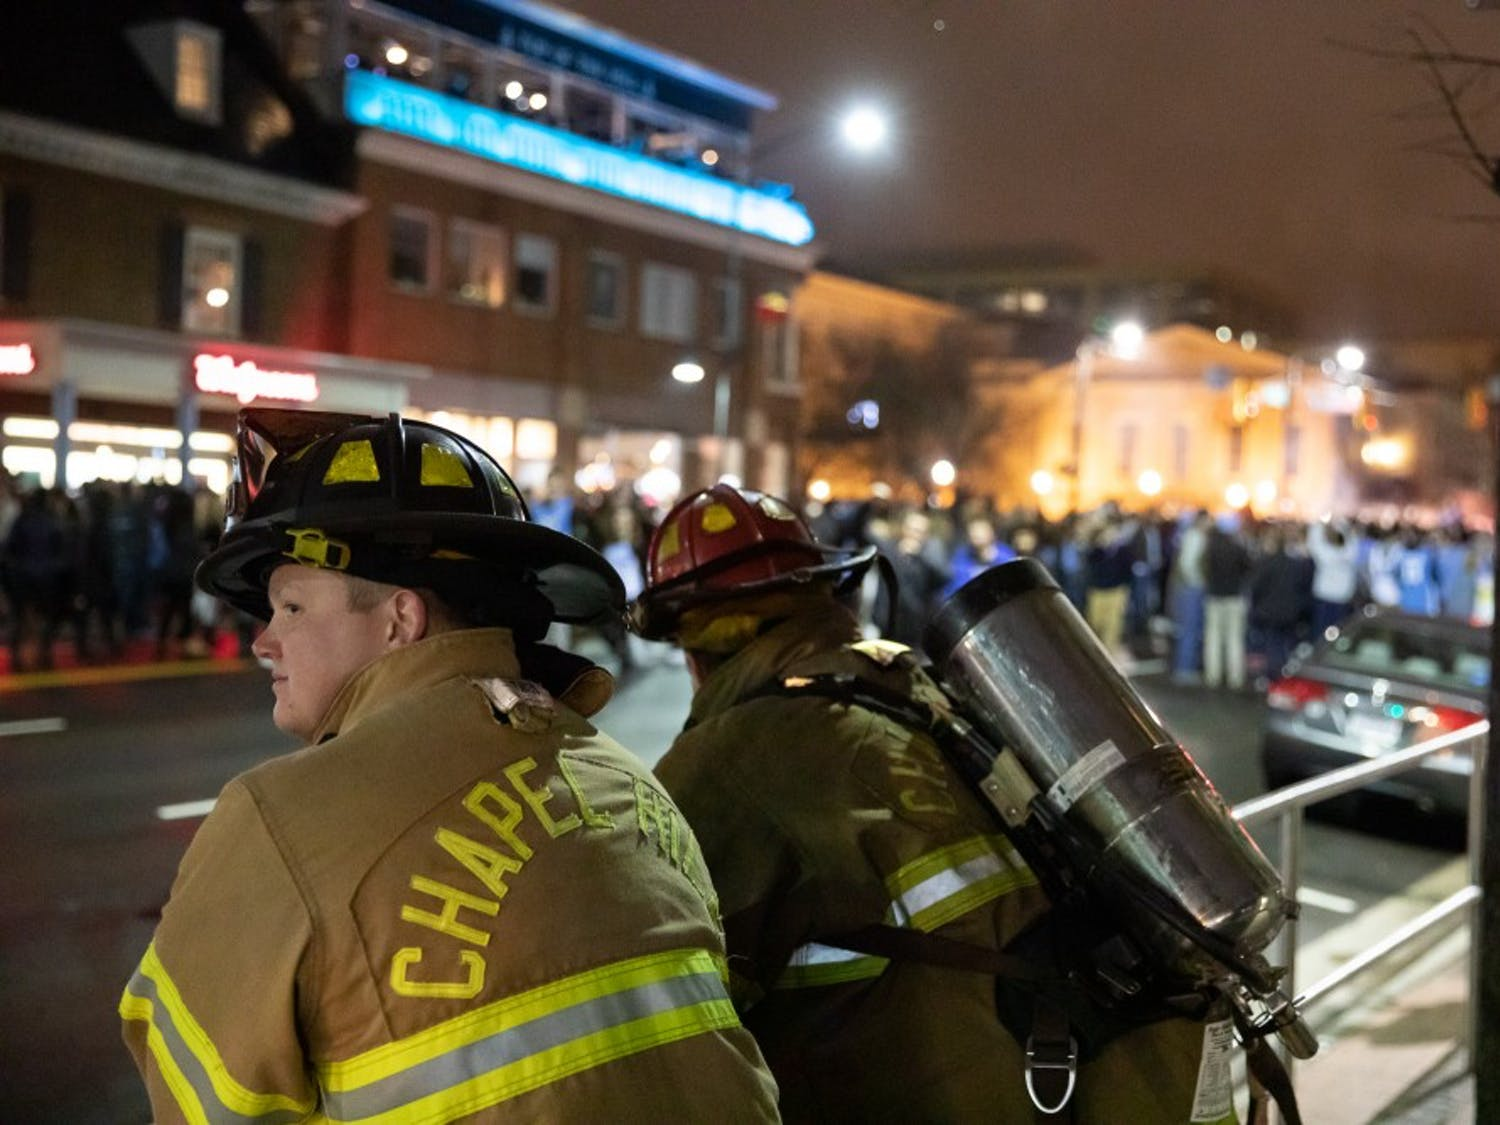 Chapel Hill firefighters monitor the rush to Franklin Street follwing  the Tar Heel's 88-72 win against the Duke Blue Devils on Wednesday, Feb. 20, 2019 in Chapel Hill, N.C. It is a yearly tradition for UNC students to run to the intersection of the Franklin Street and Columbia Street after a Tar Heel win against the Blue Devils.